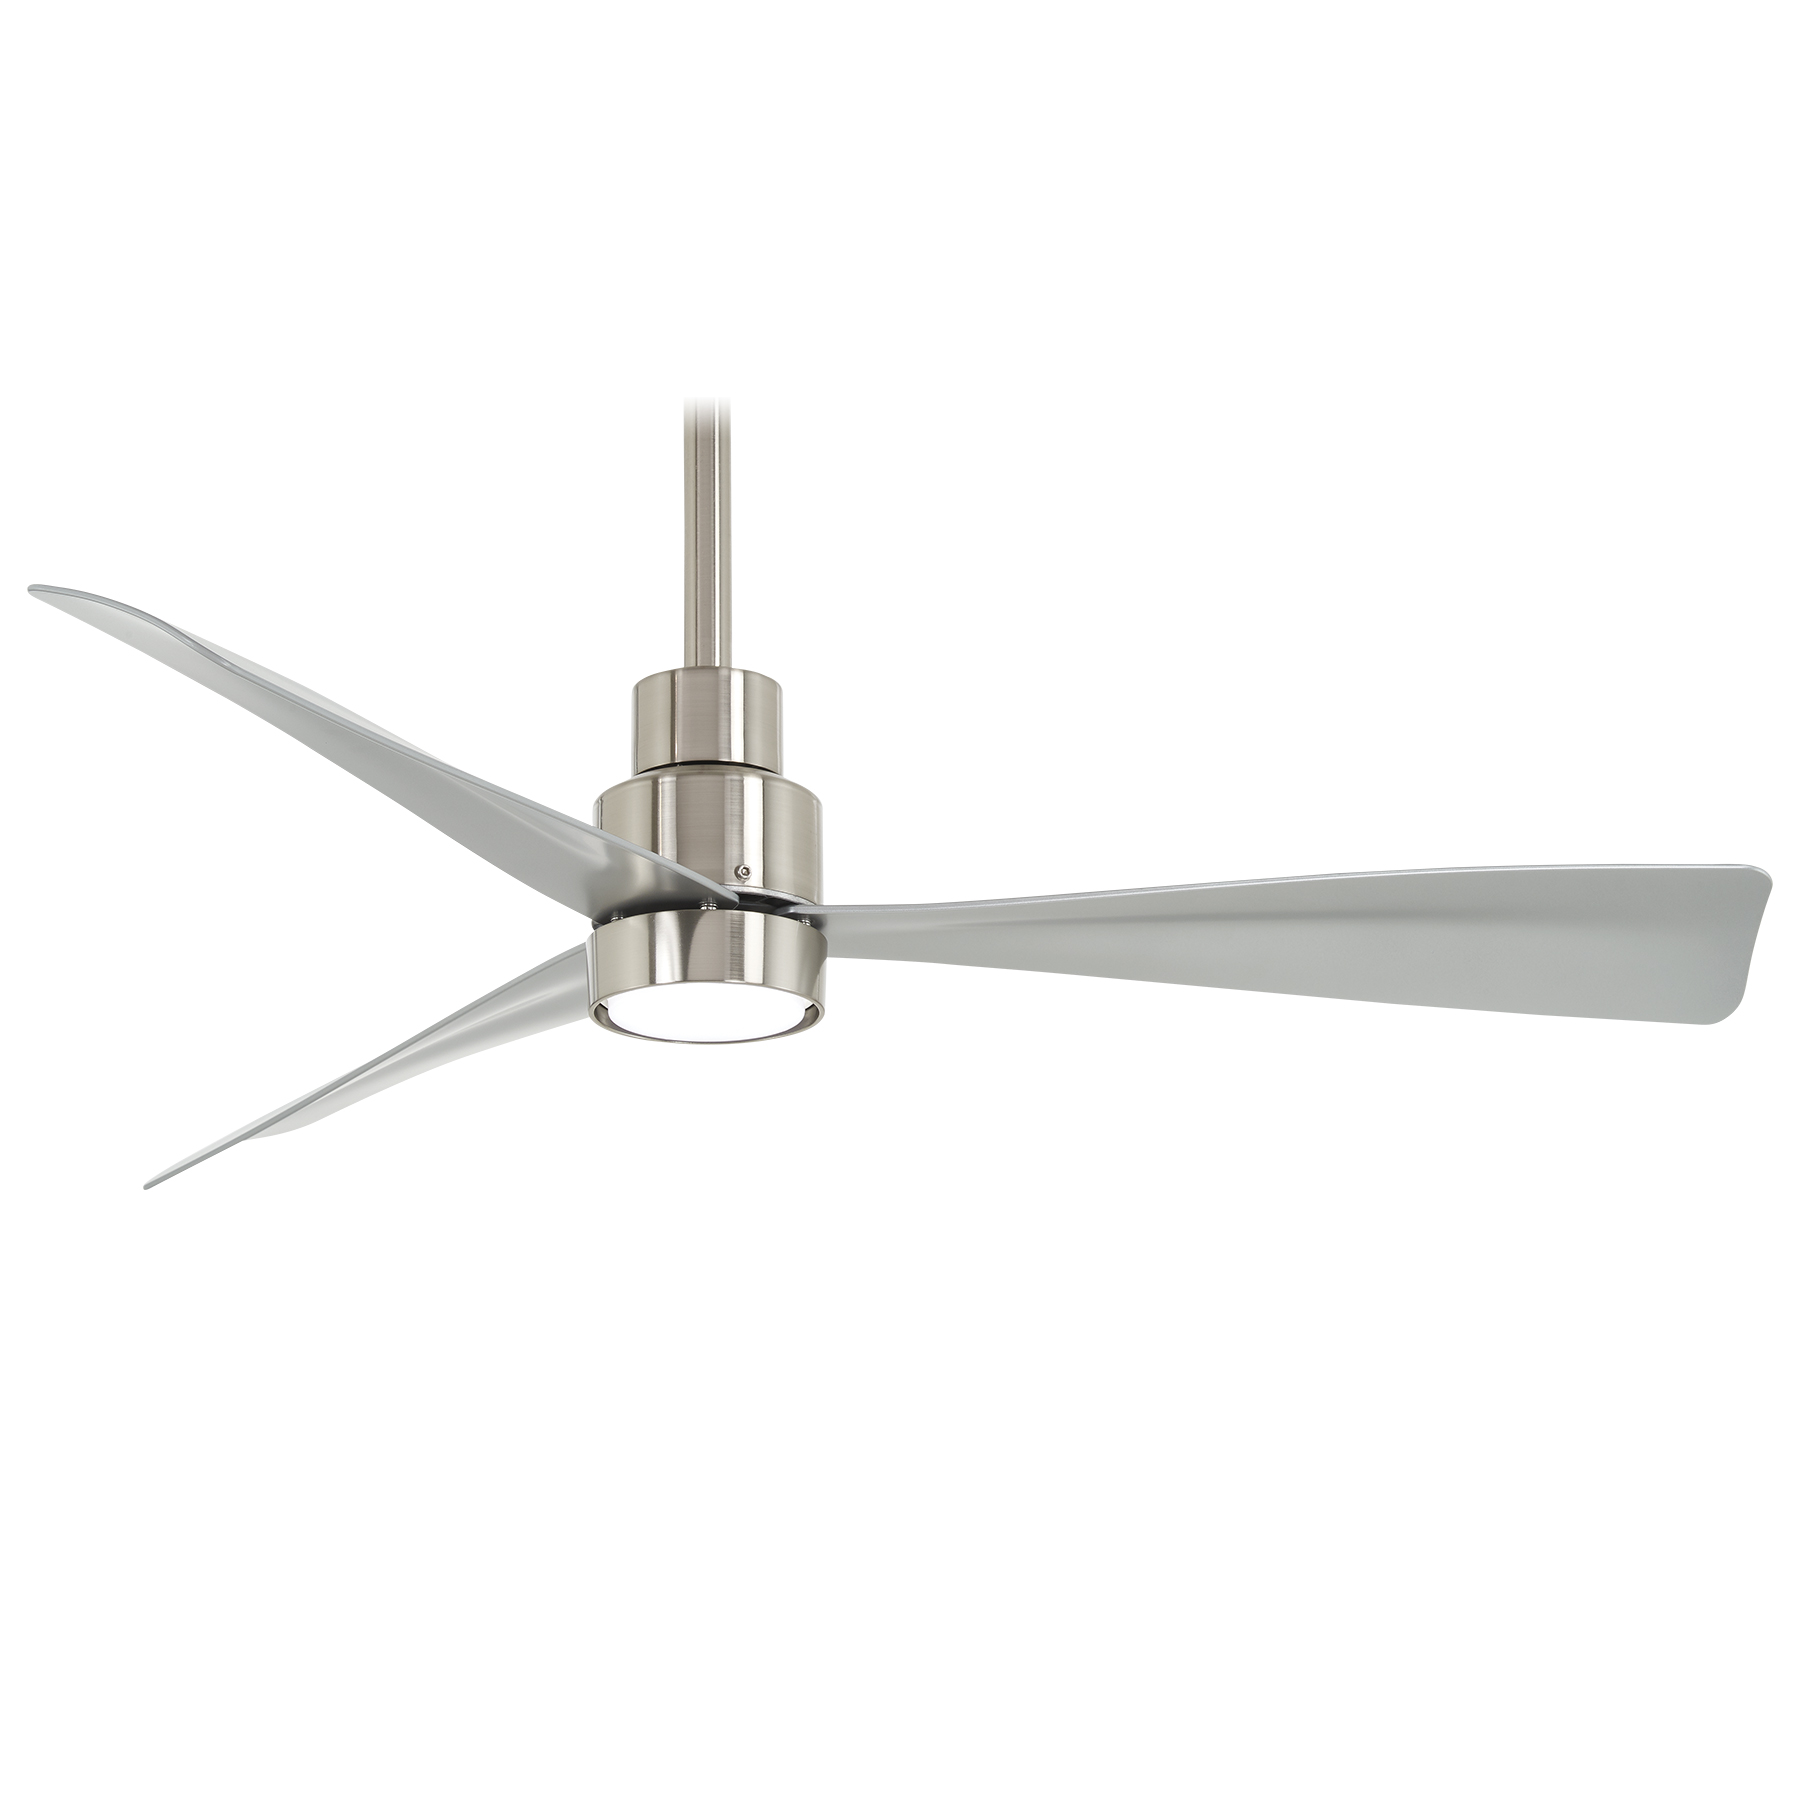 Minka Group The Art Of Decorative Lighting And Fans White Low Profile 42 Ceiling Fan Wiring Diagram Model